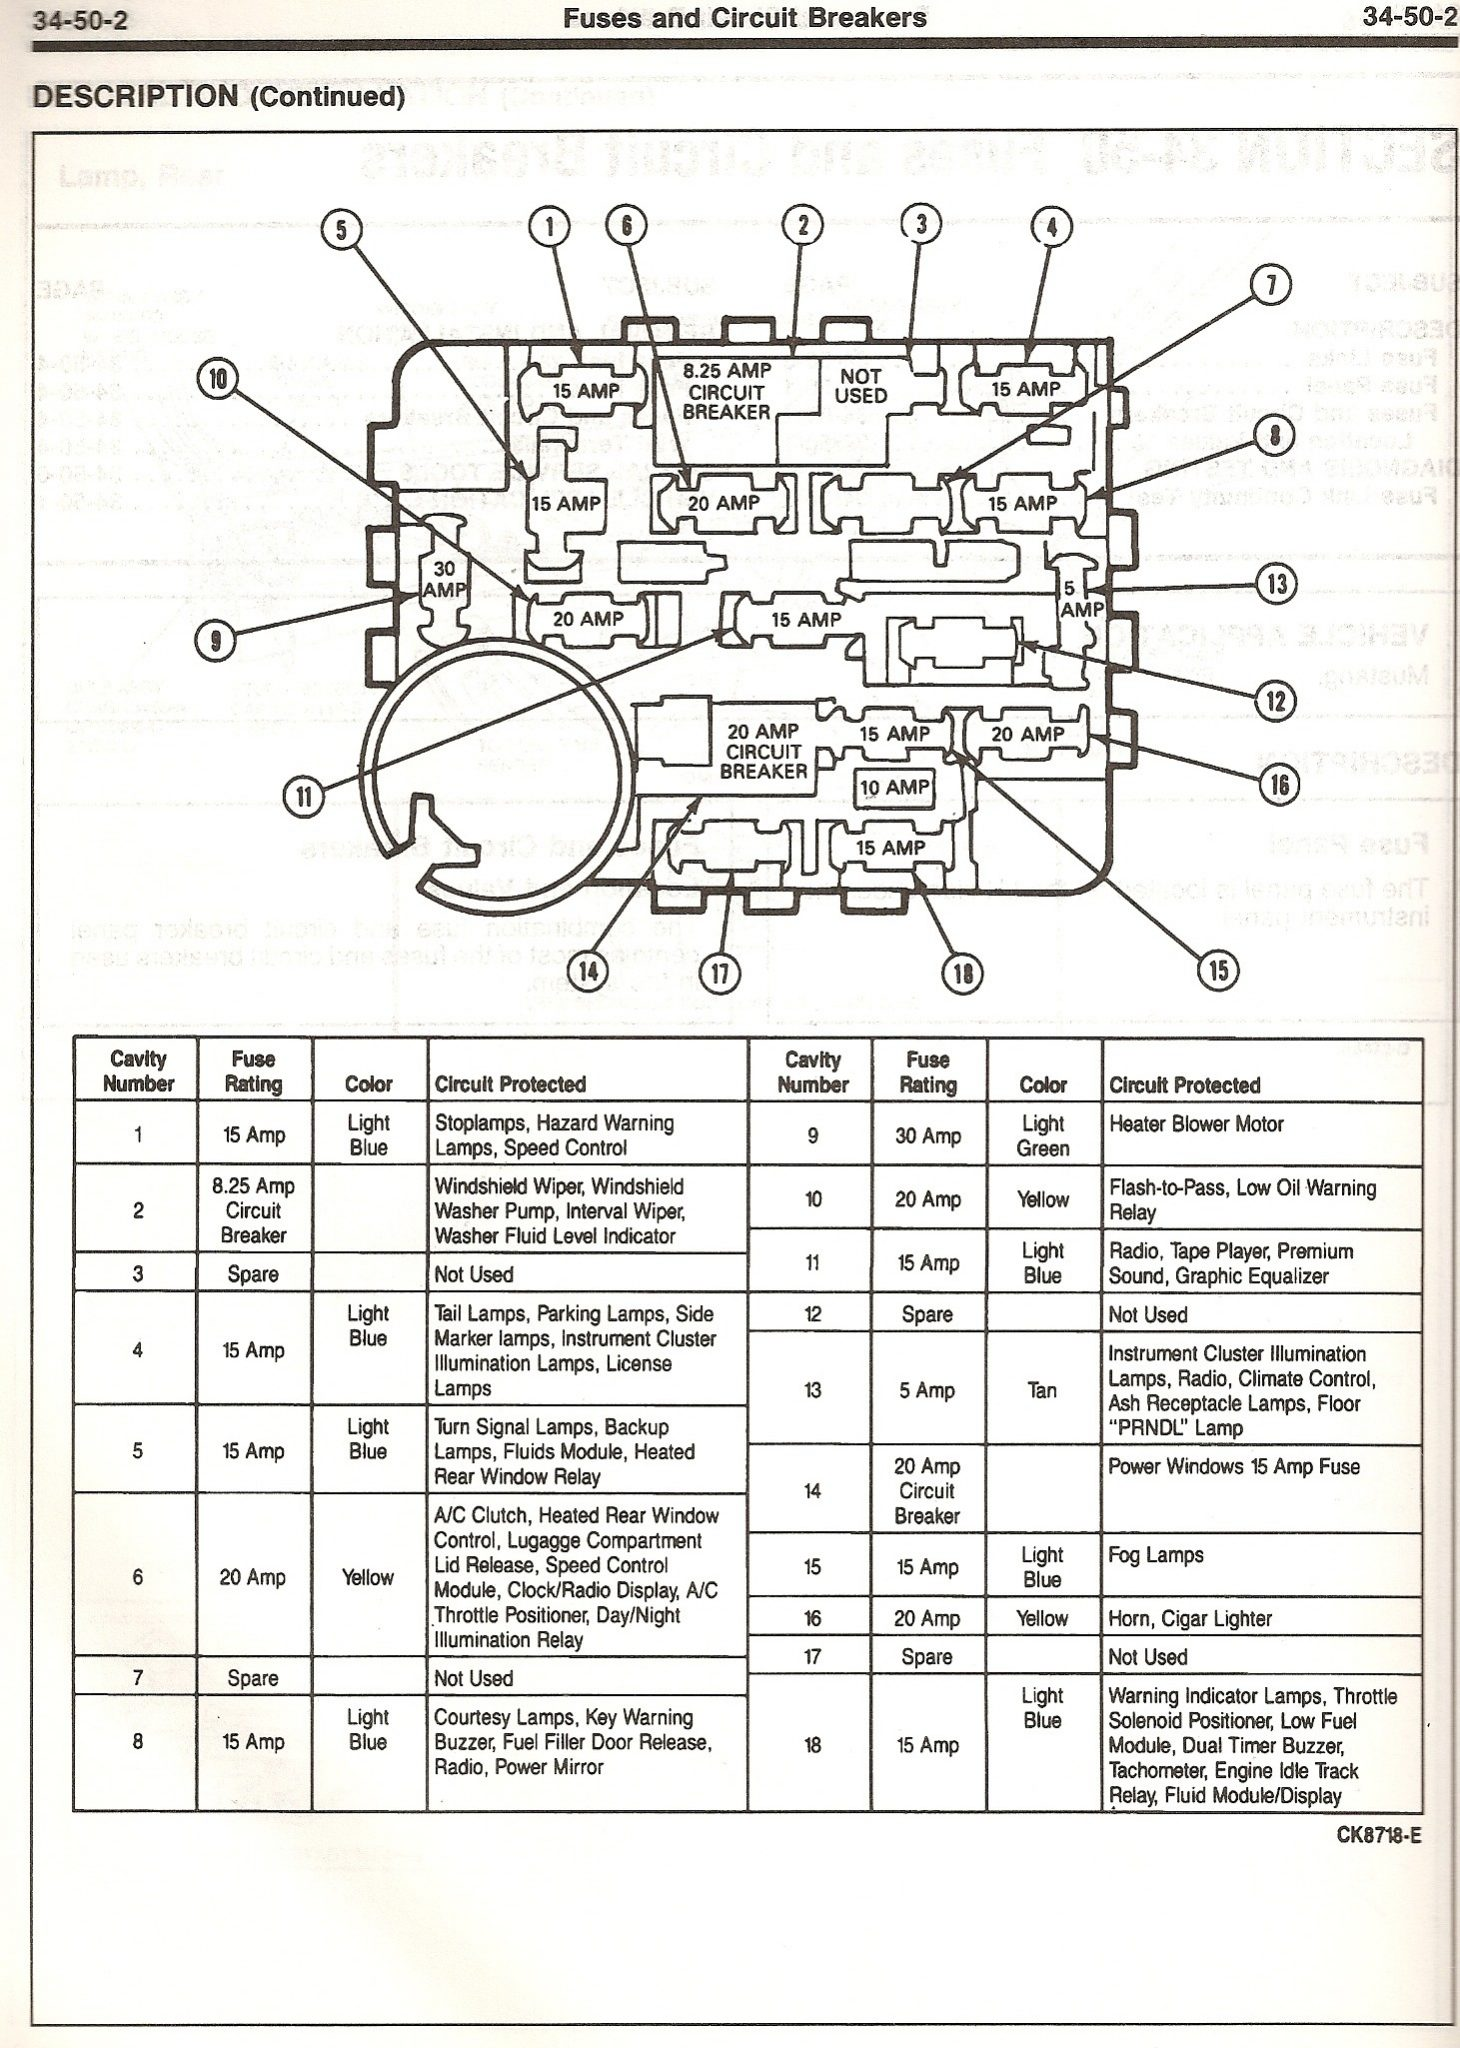 Miata Intake Manifold Diagram additionally Dodge Ram 1500 Transmission Also 1998 Durango Wiring furthermore Vss Wiring Problem Help 1840913 together with Hyundai Sonata 2007 Fuse Box Diagram additionally . on 2002 honda accord fuse box layout